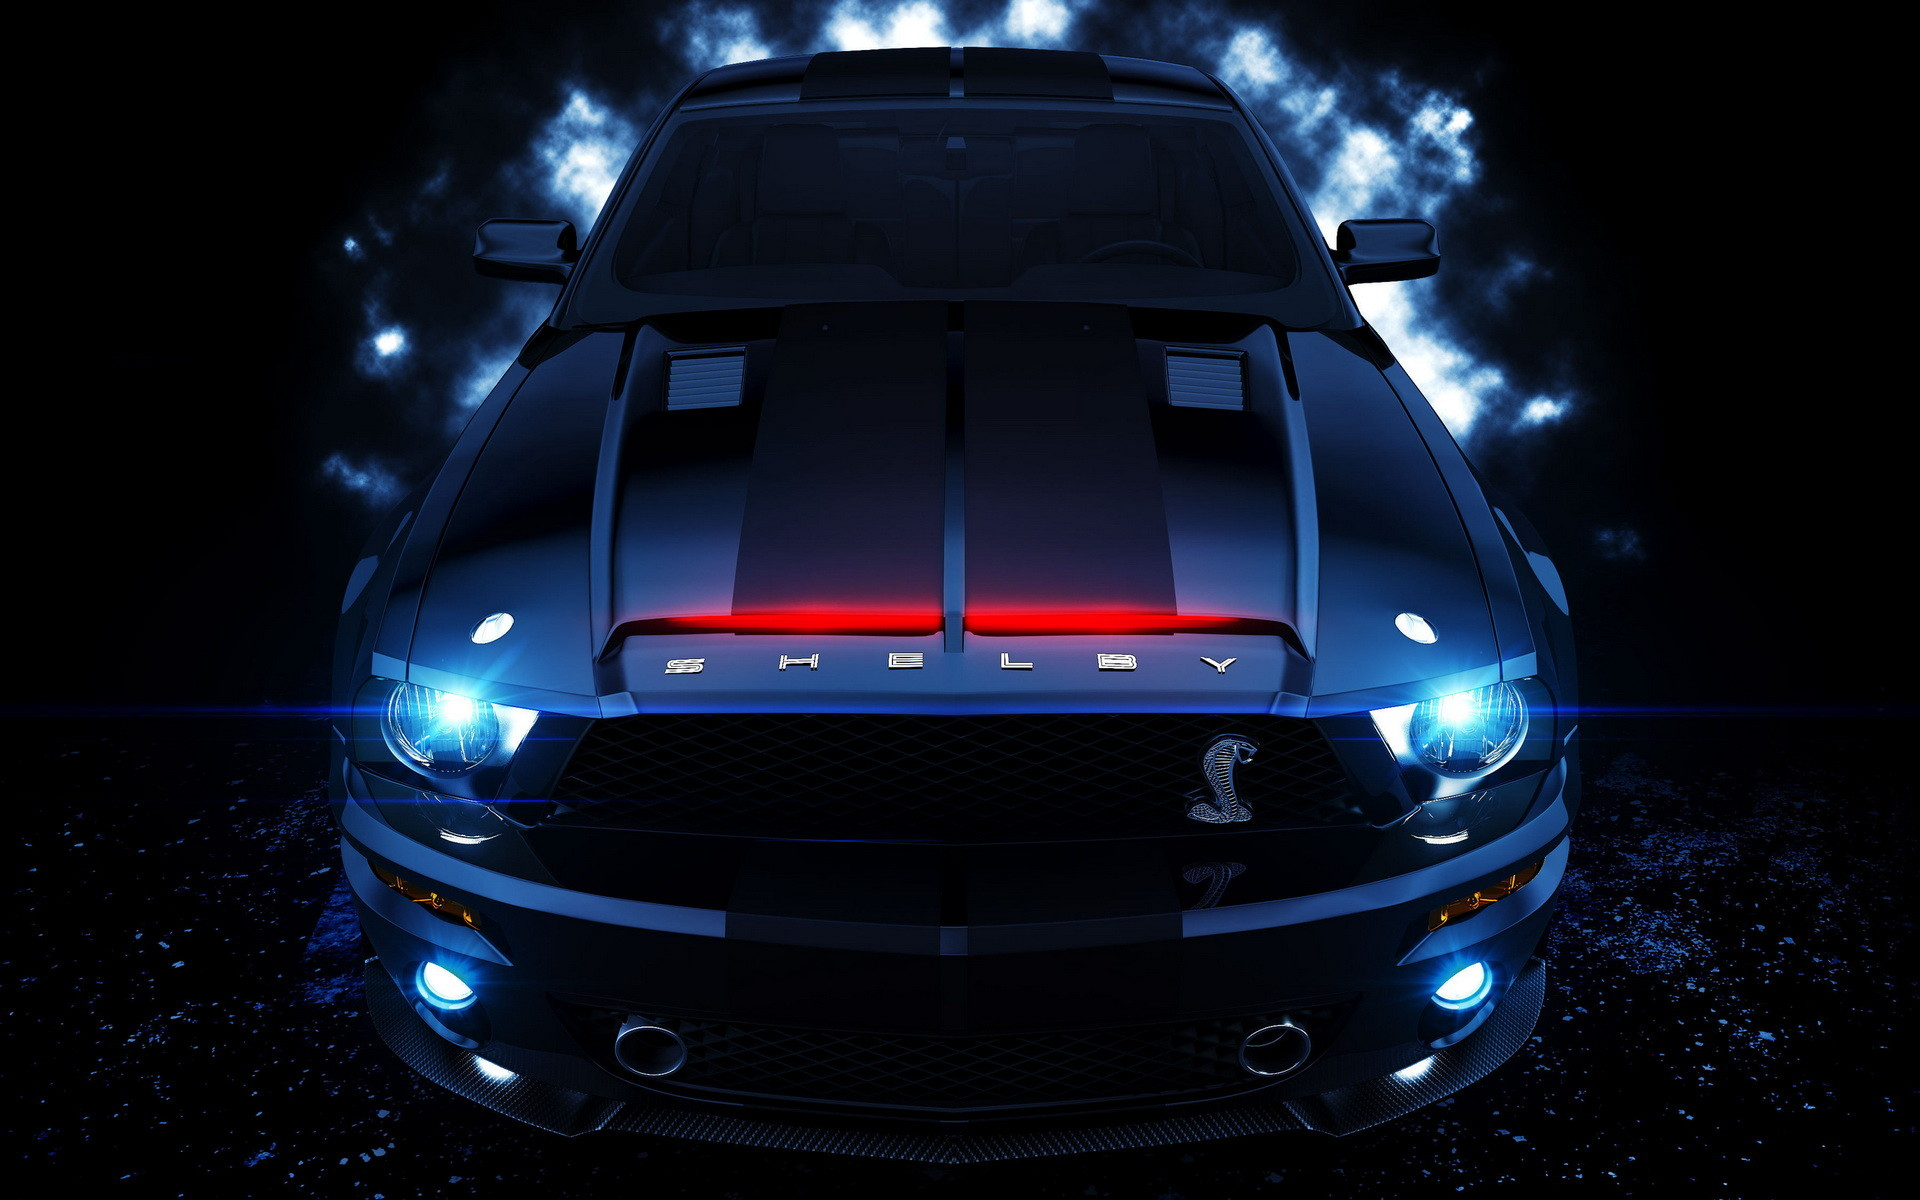 Mustang Shelby Cobra Hd Wallpapers Backgrounds Wallpaper Abyss